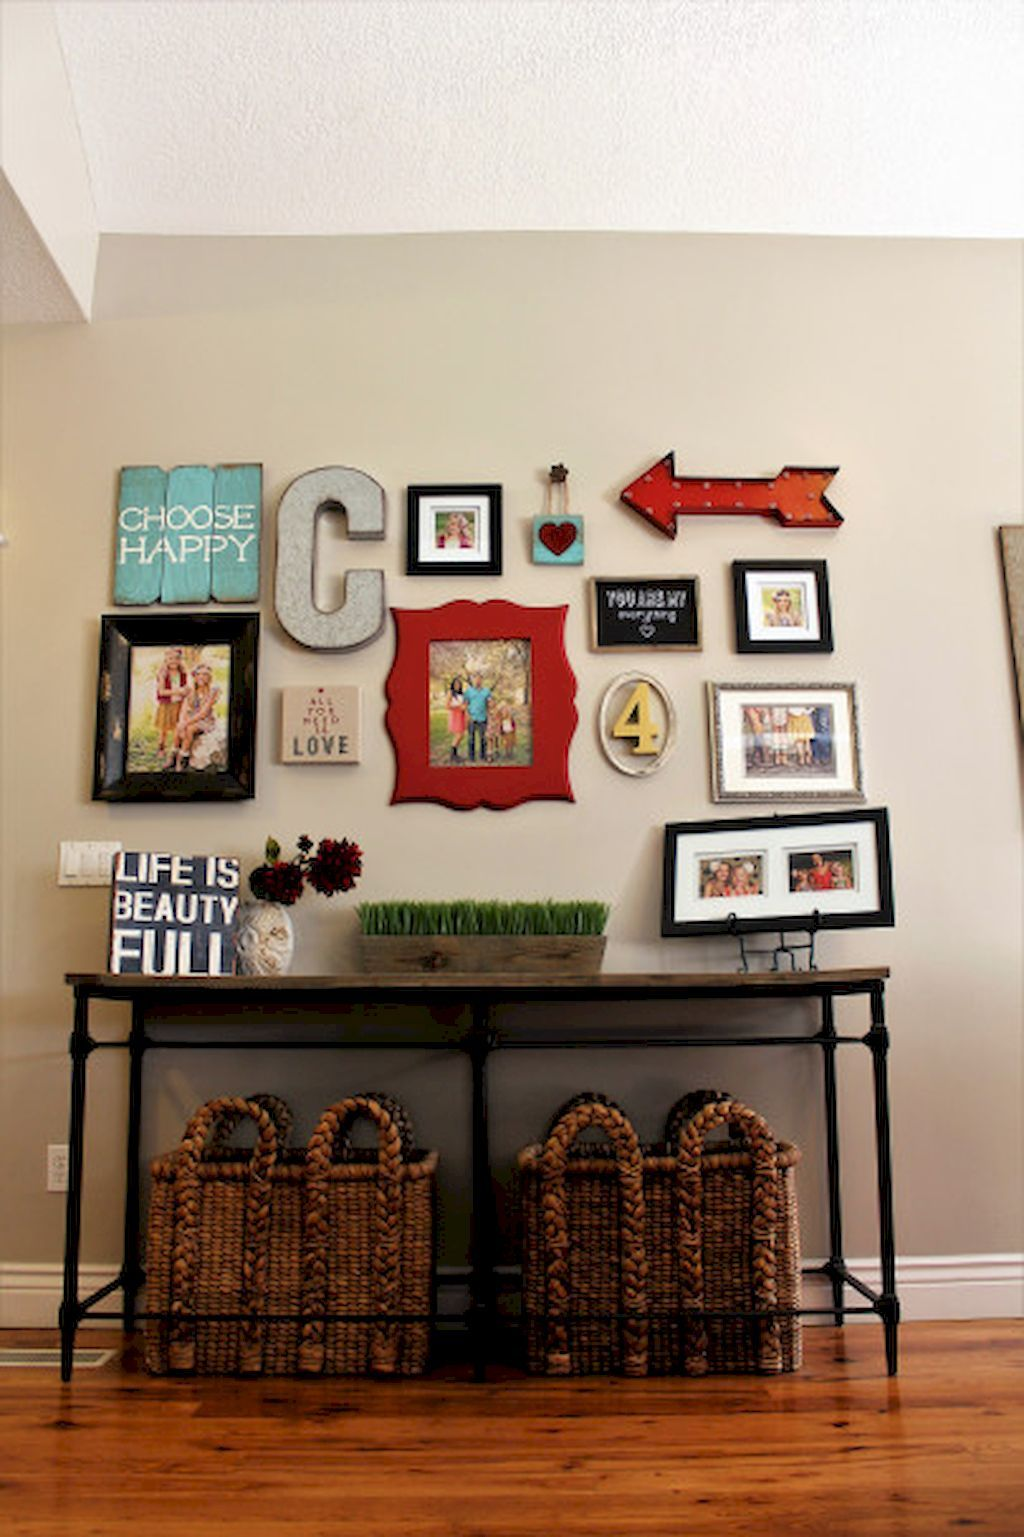 50 Beautiful Gallery Wall Ideas to Show Your Photos ...